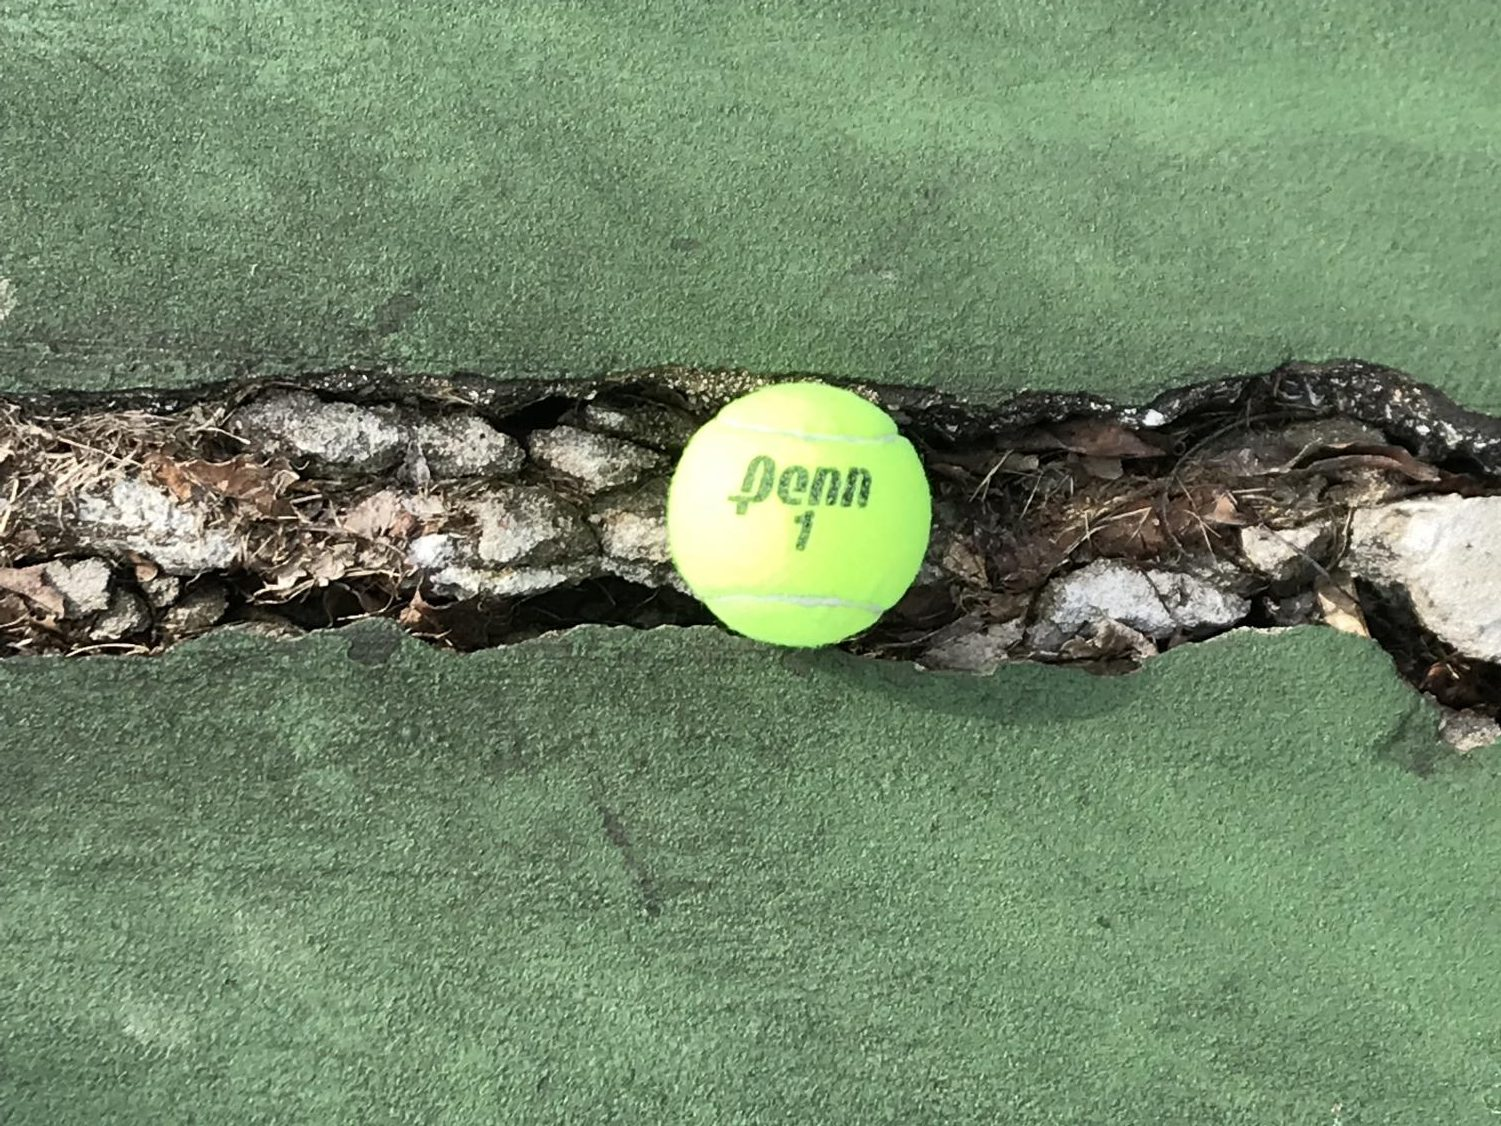 One of the cracks on the tennis courts.